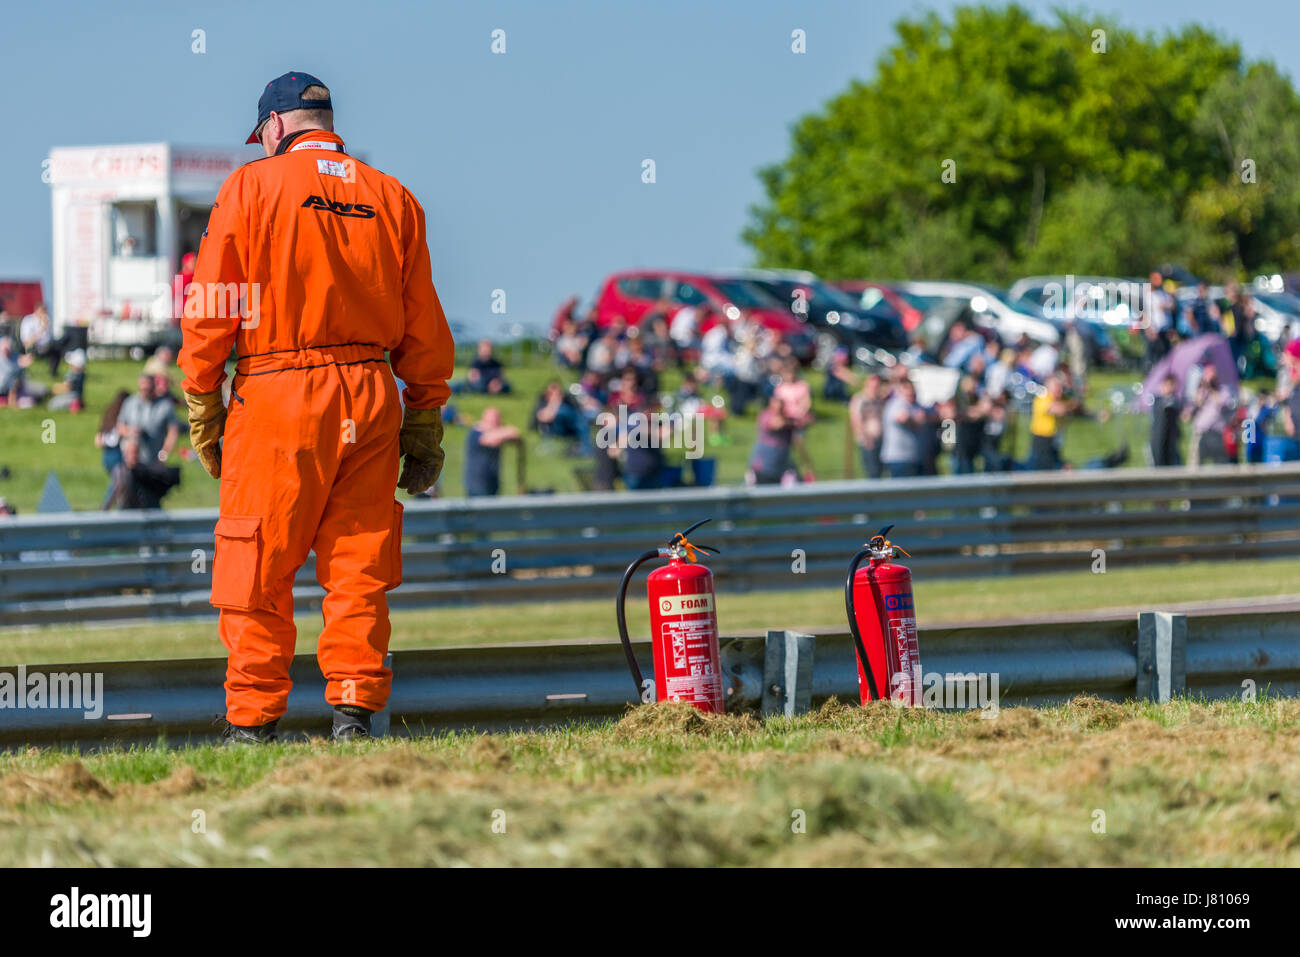 A Motorsport Marshal stationed at his post during the 2017 BTCC meeting at Thruxton. - Stock Image